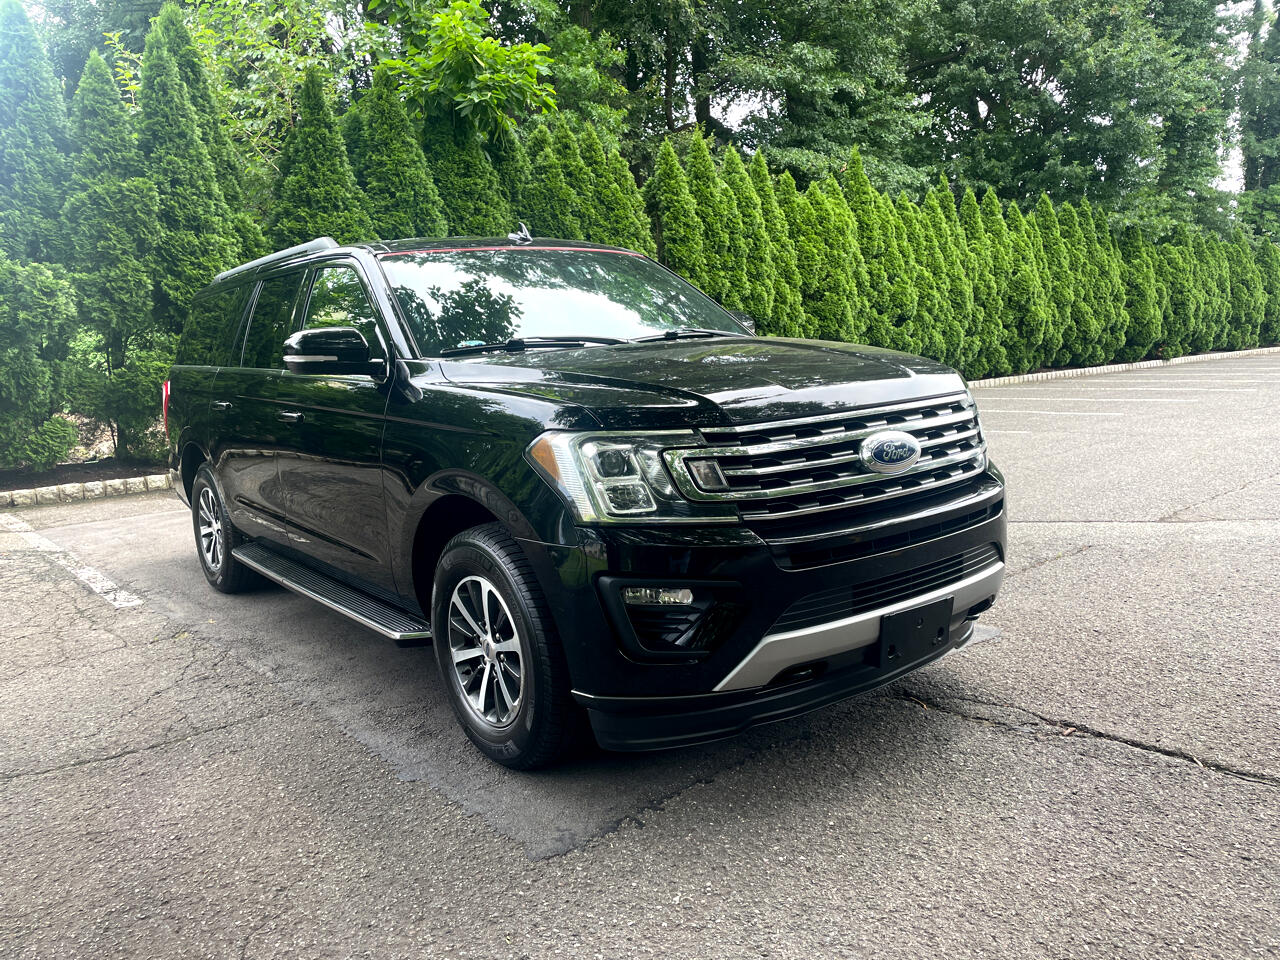 Ford Expedition Max XLT 4x4 2018